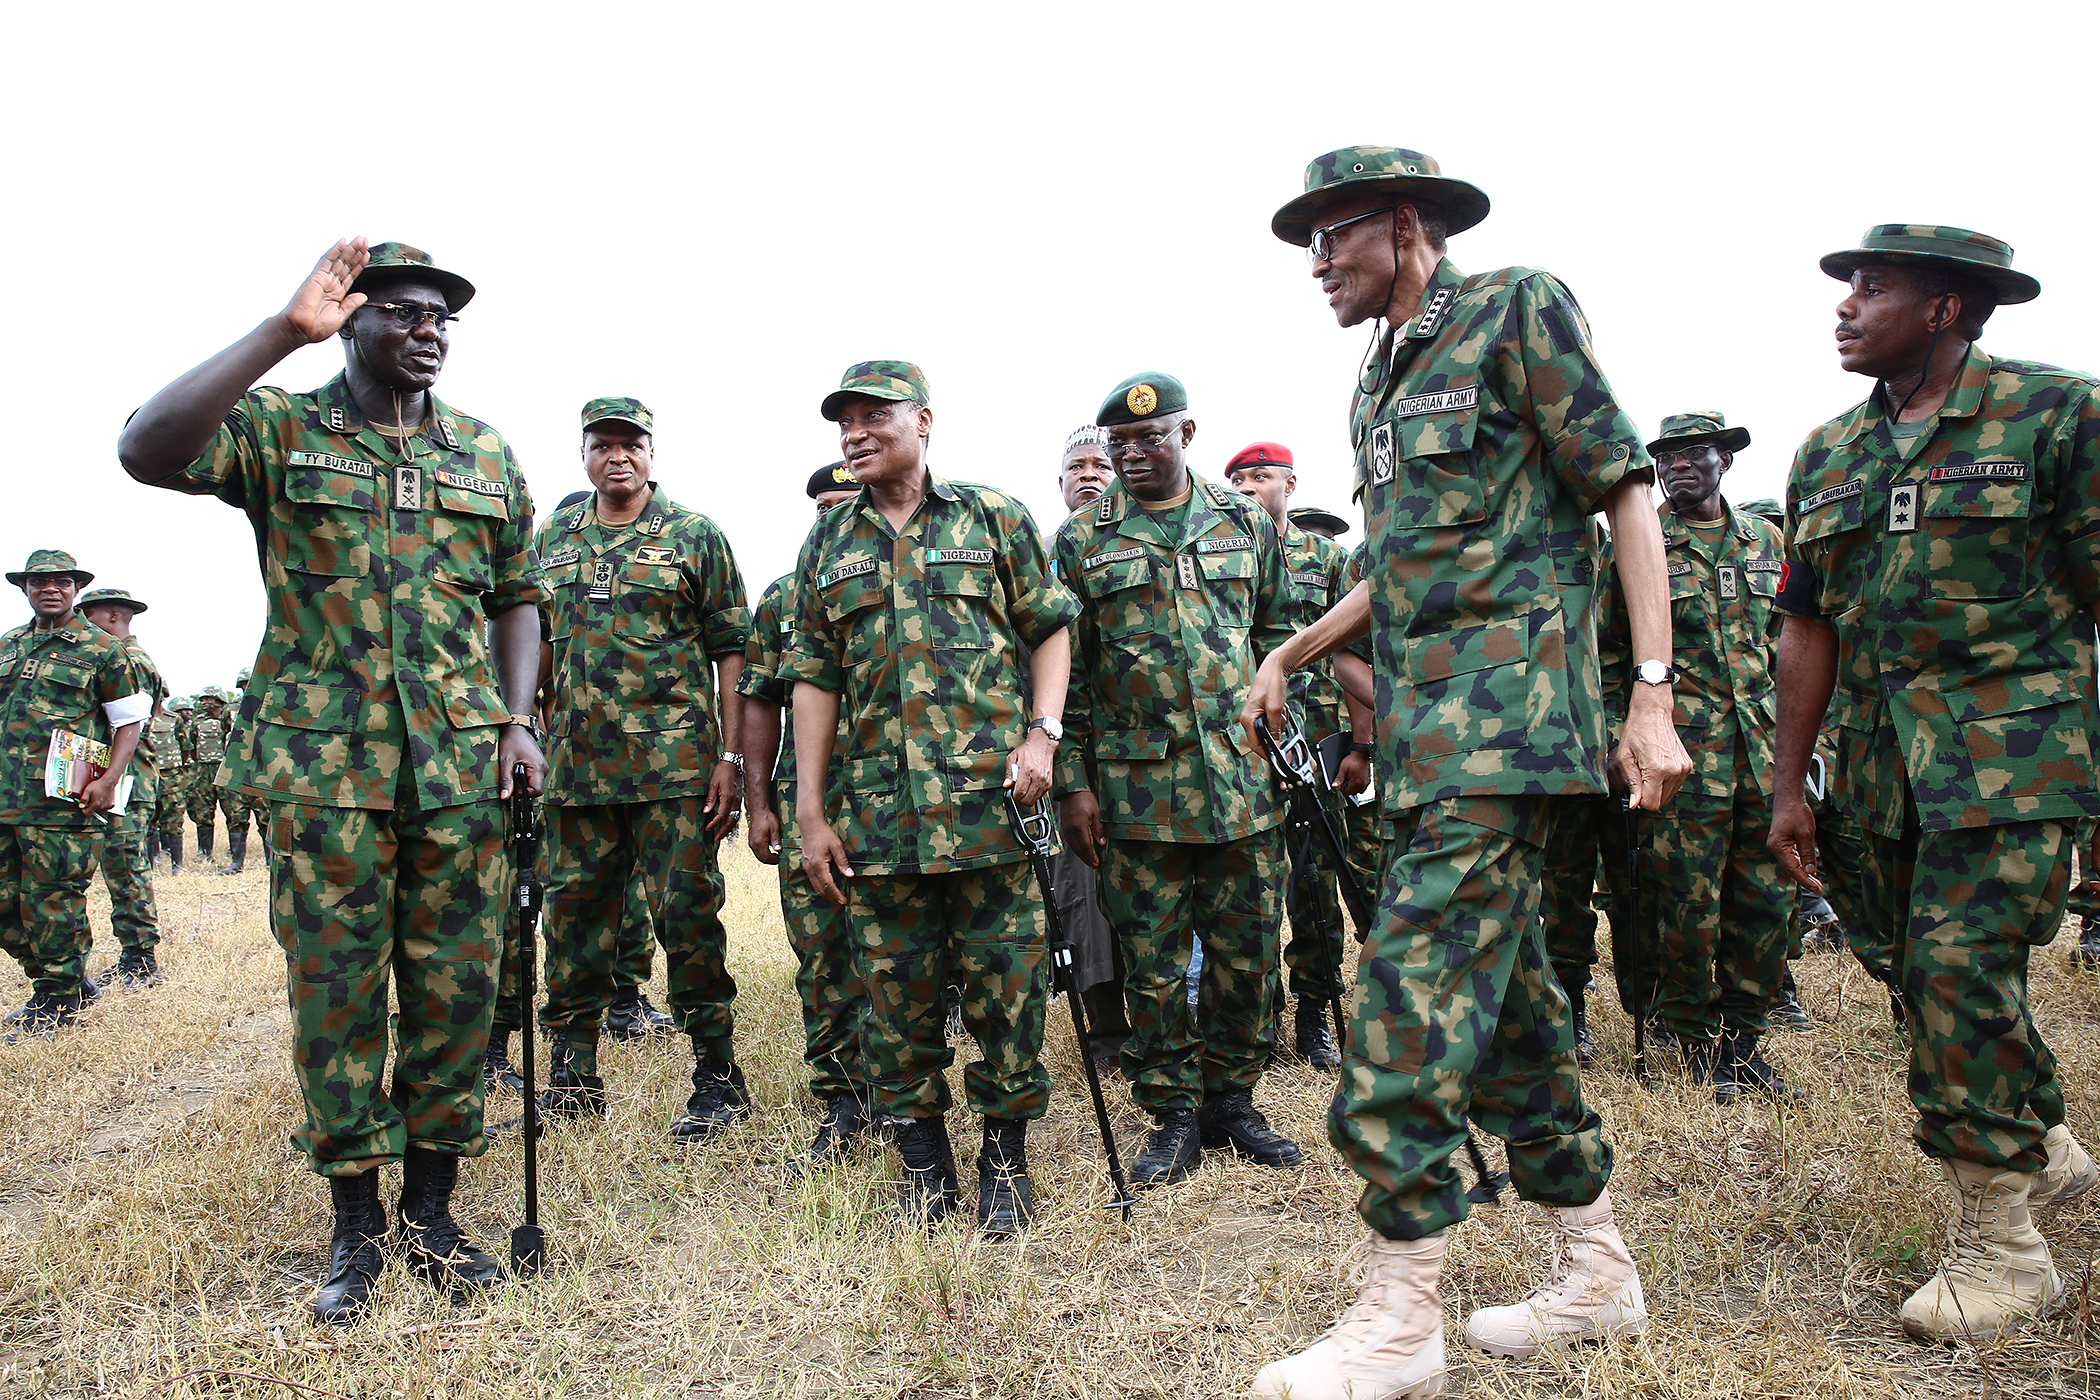 We'll henceforth call Buhari 'major general', Punch says in protest against 'autocracy'